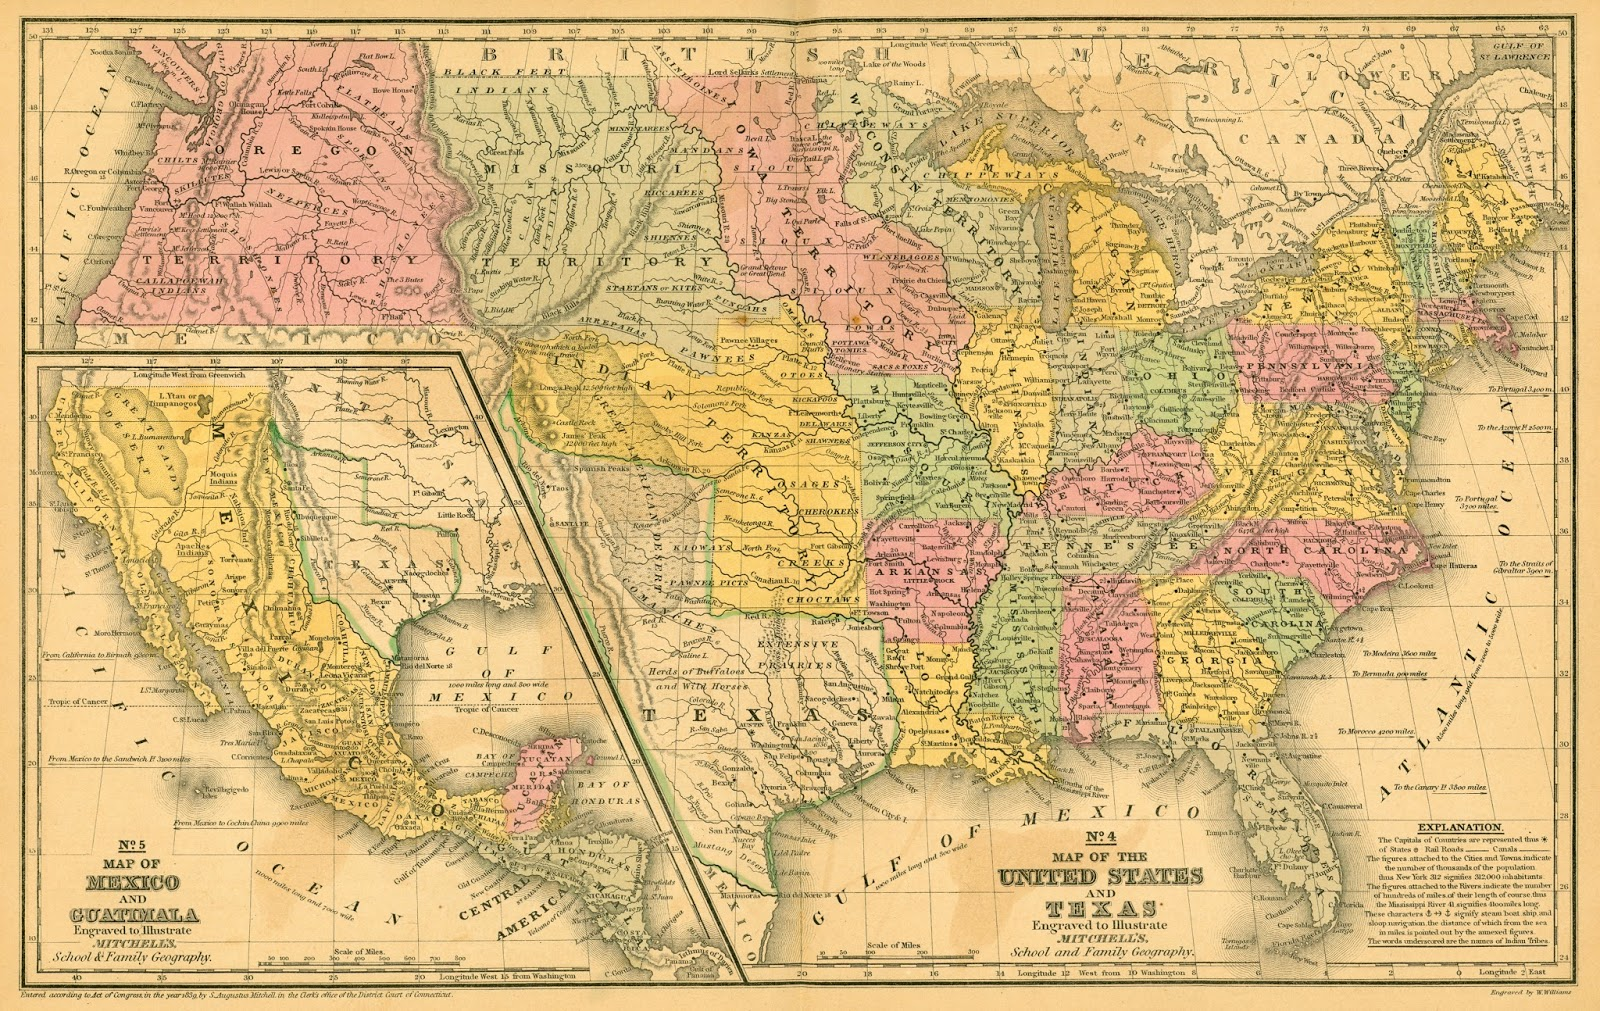 Map of the USA (1839)